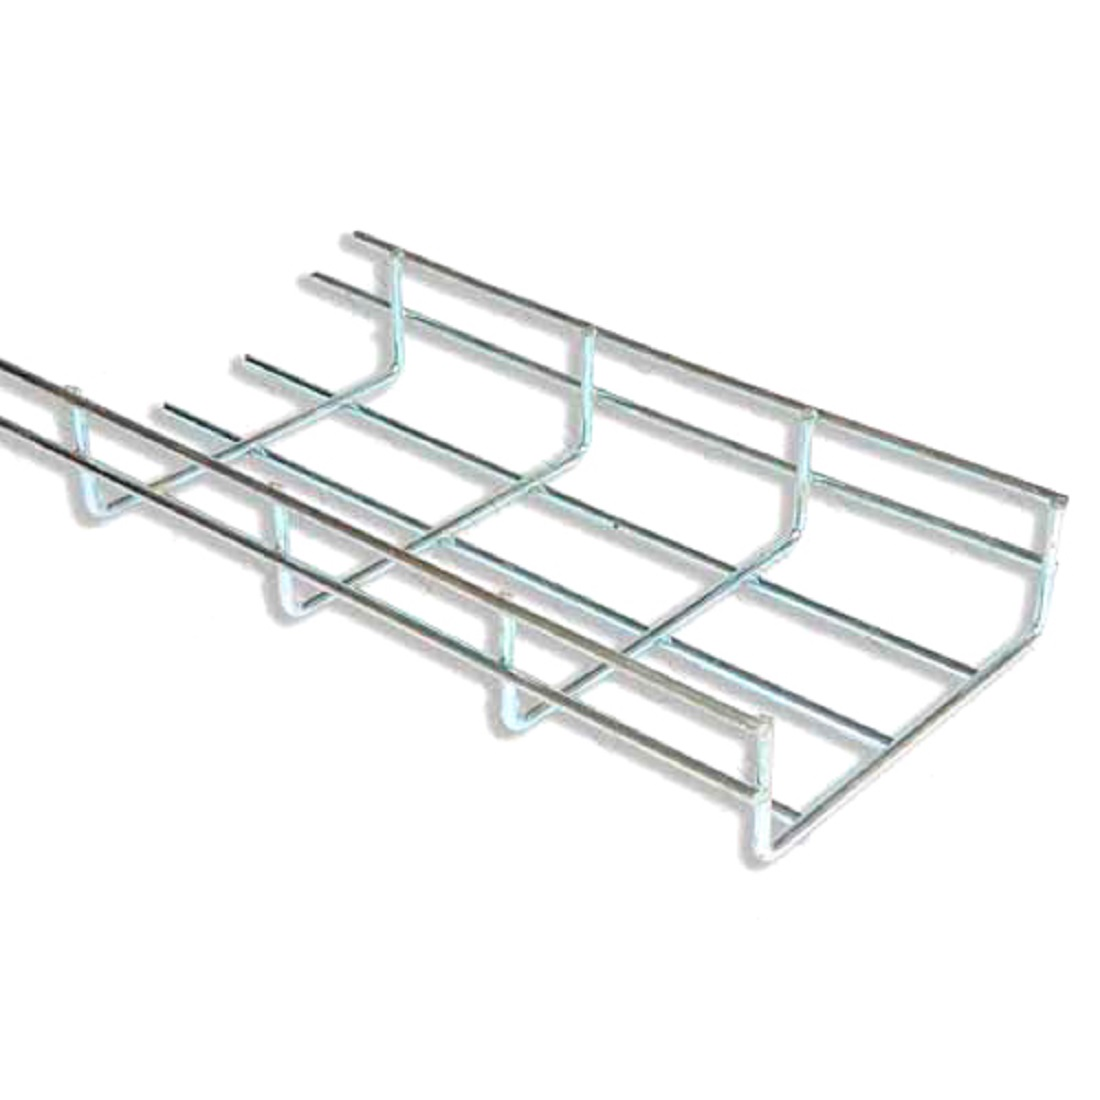 ukplus mesh cable tray grids made of galvanized steel